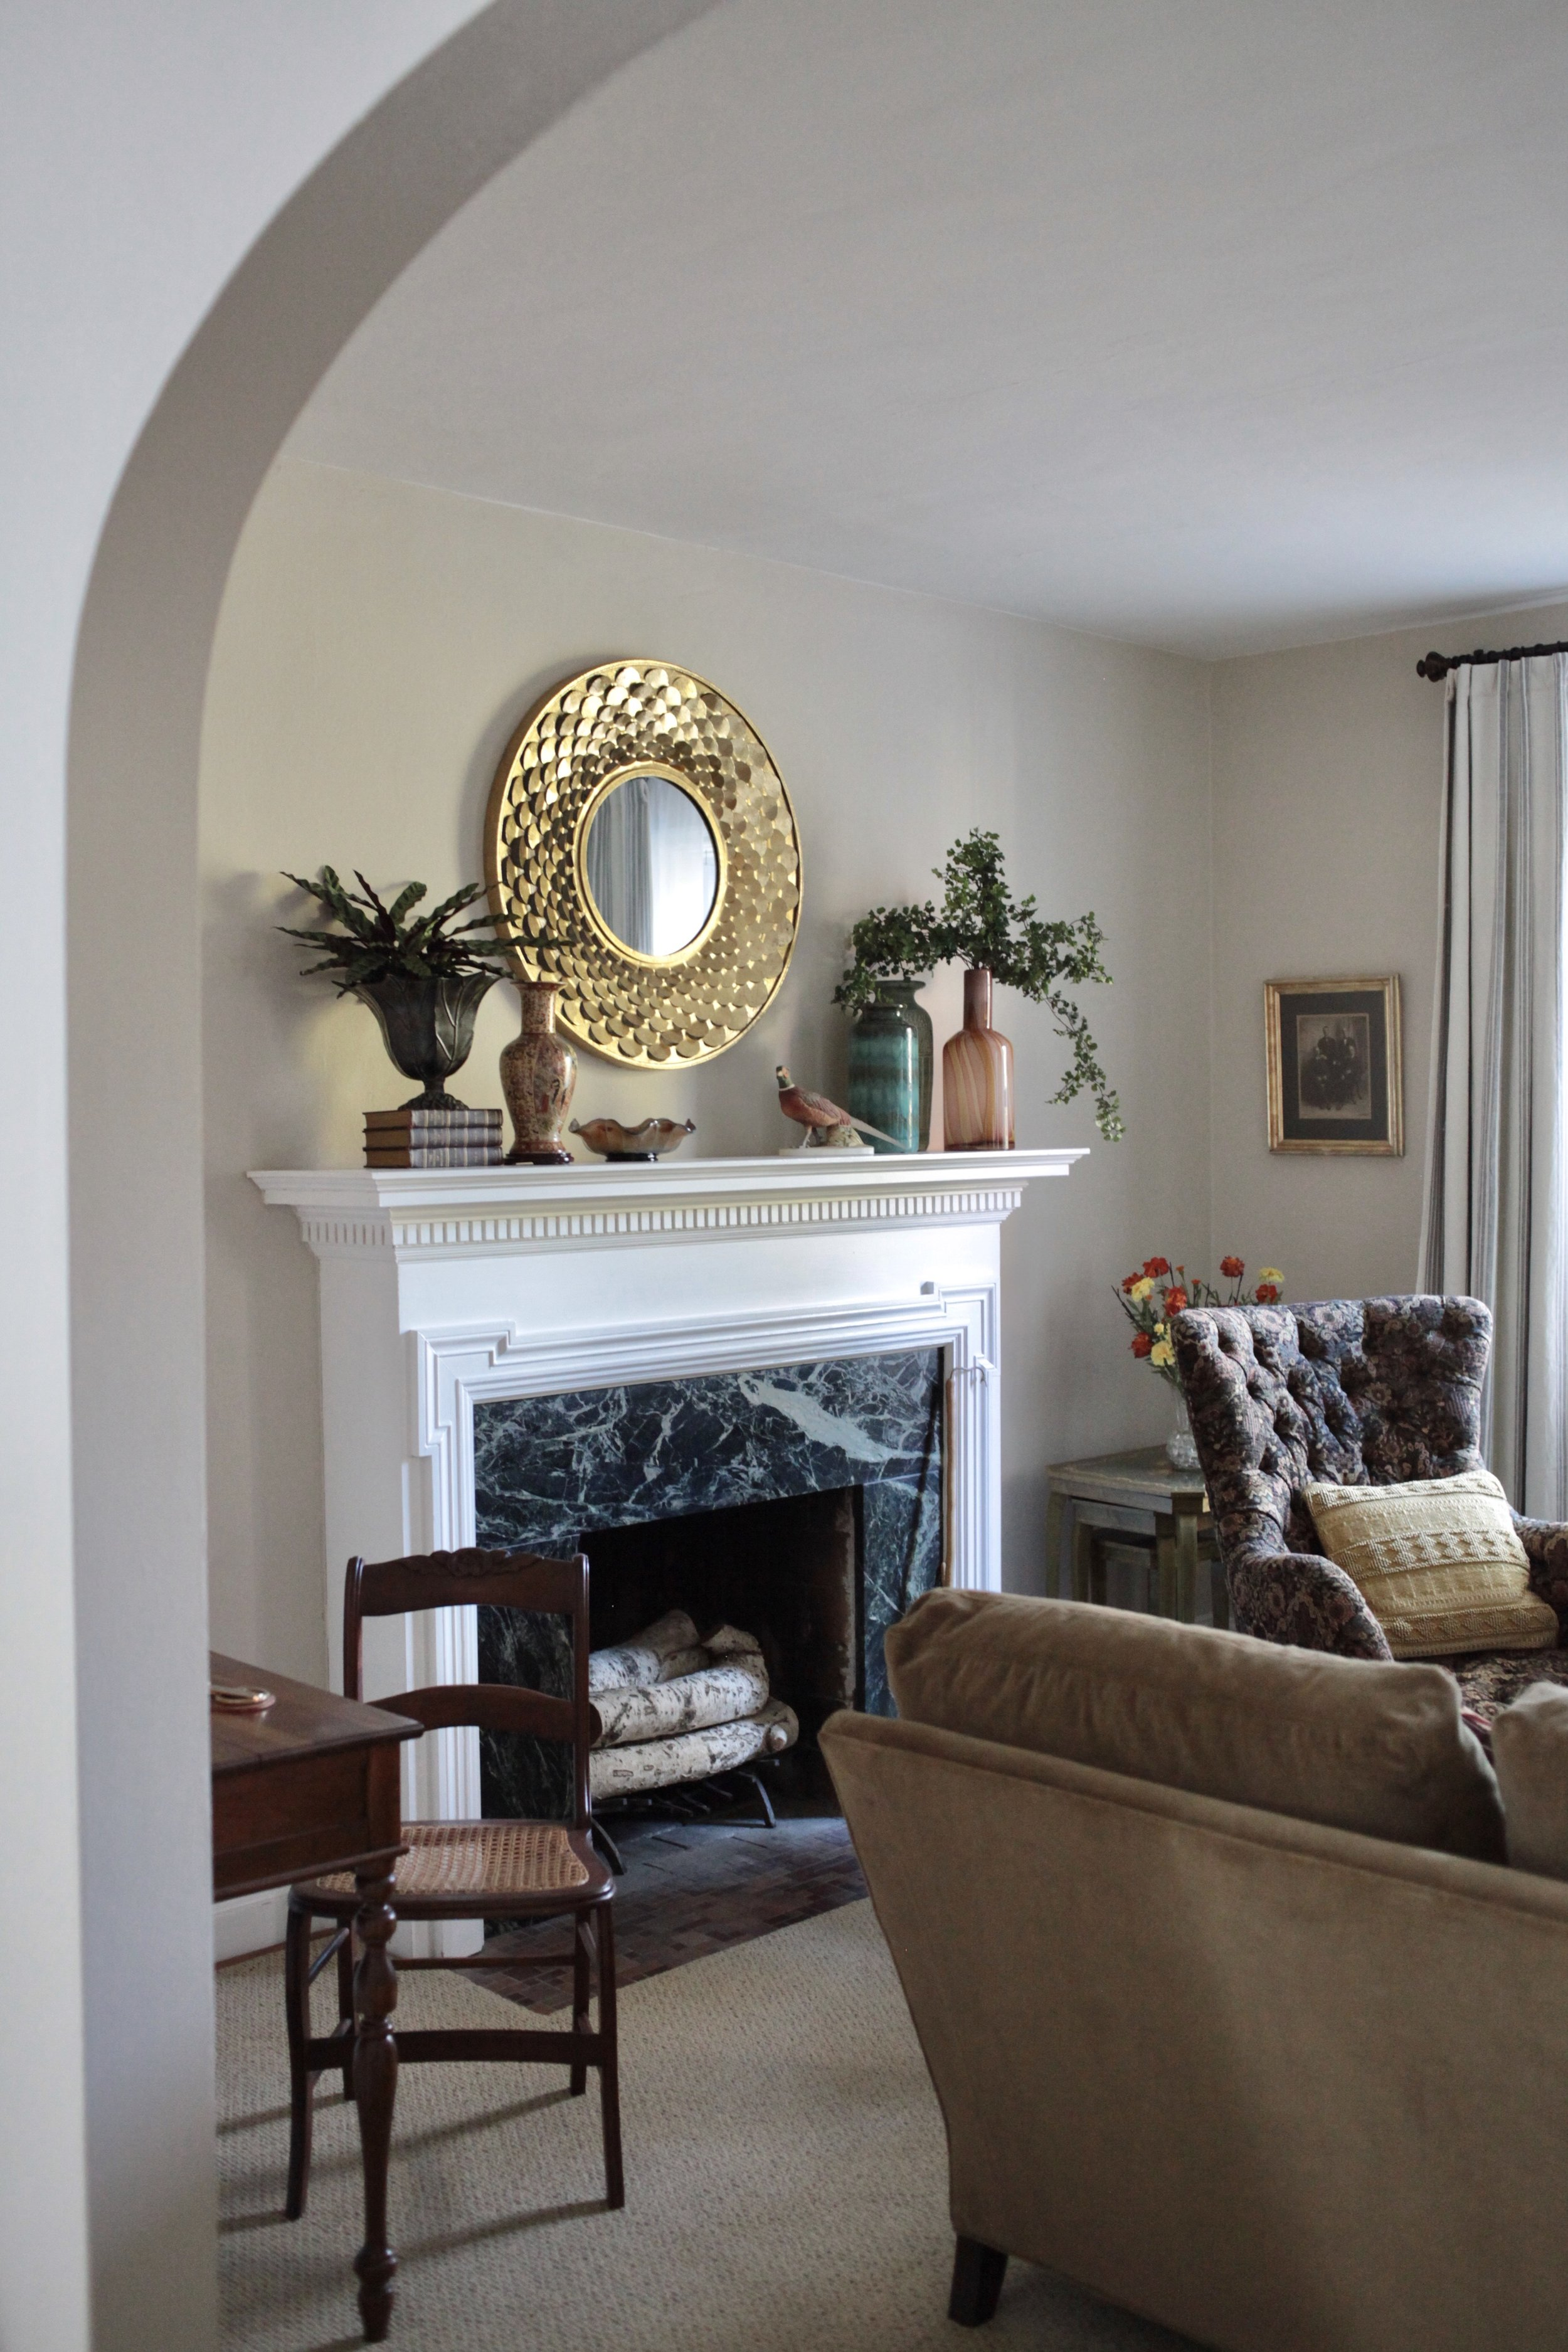 Gold round mirror above fireplace